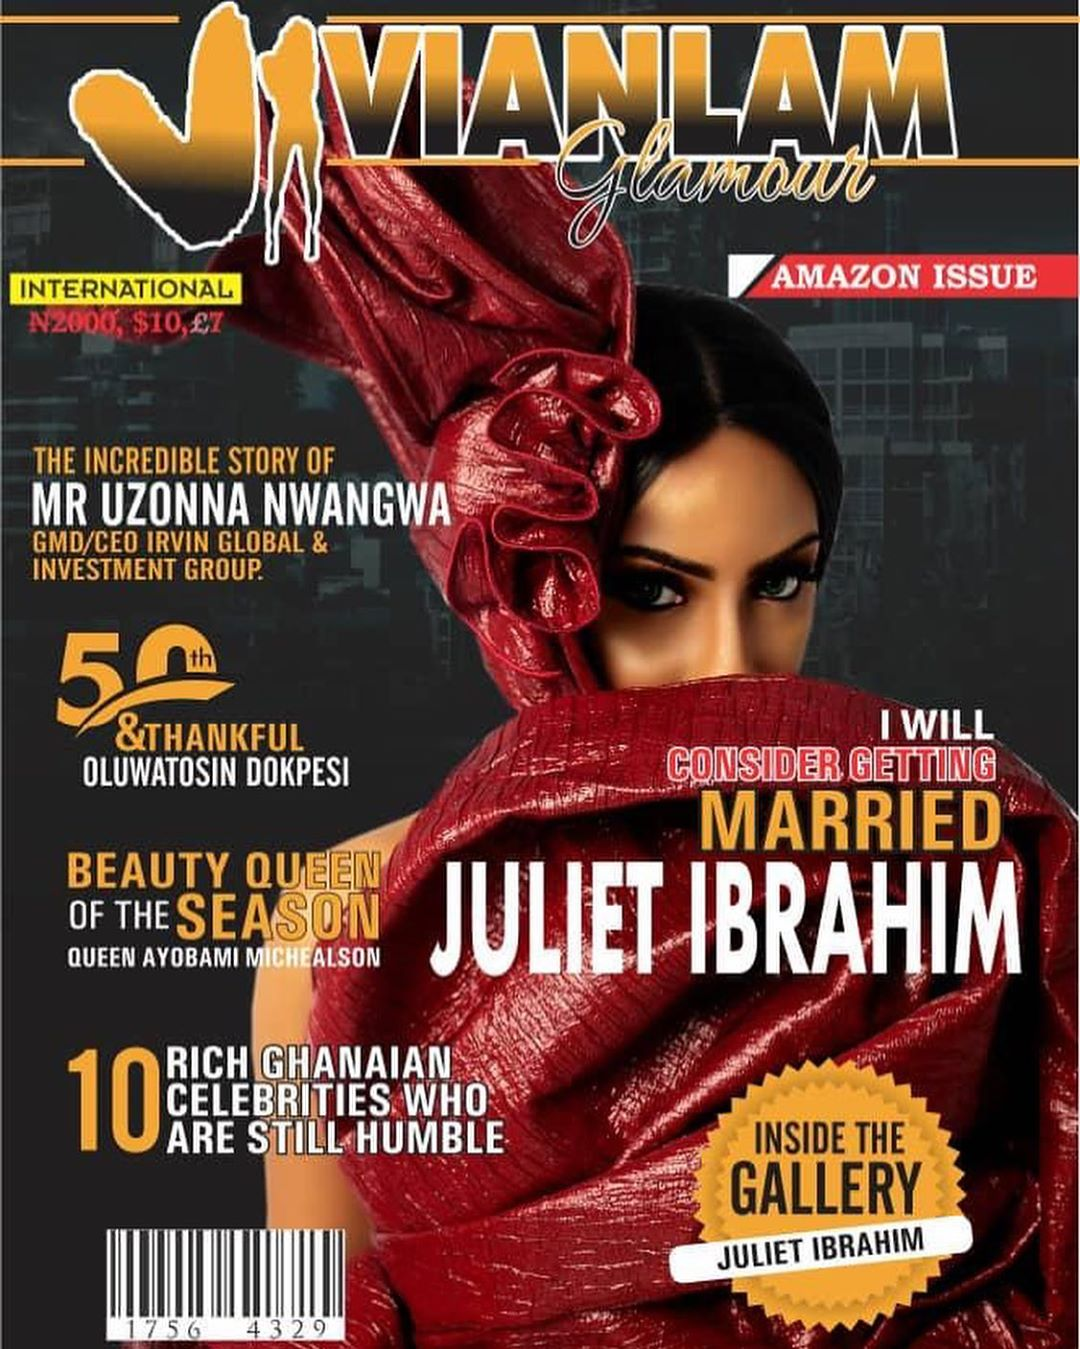 """I Will Consider Getting Married"" – Juliet Ibrahim Covers New Edition Of Vivian Lam Glamour Magazine"